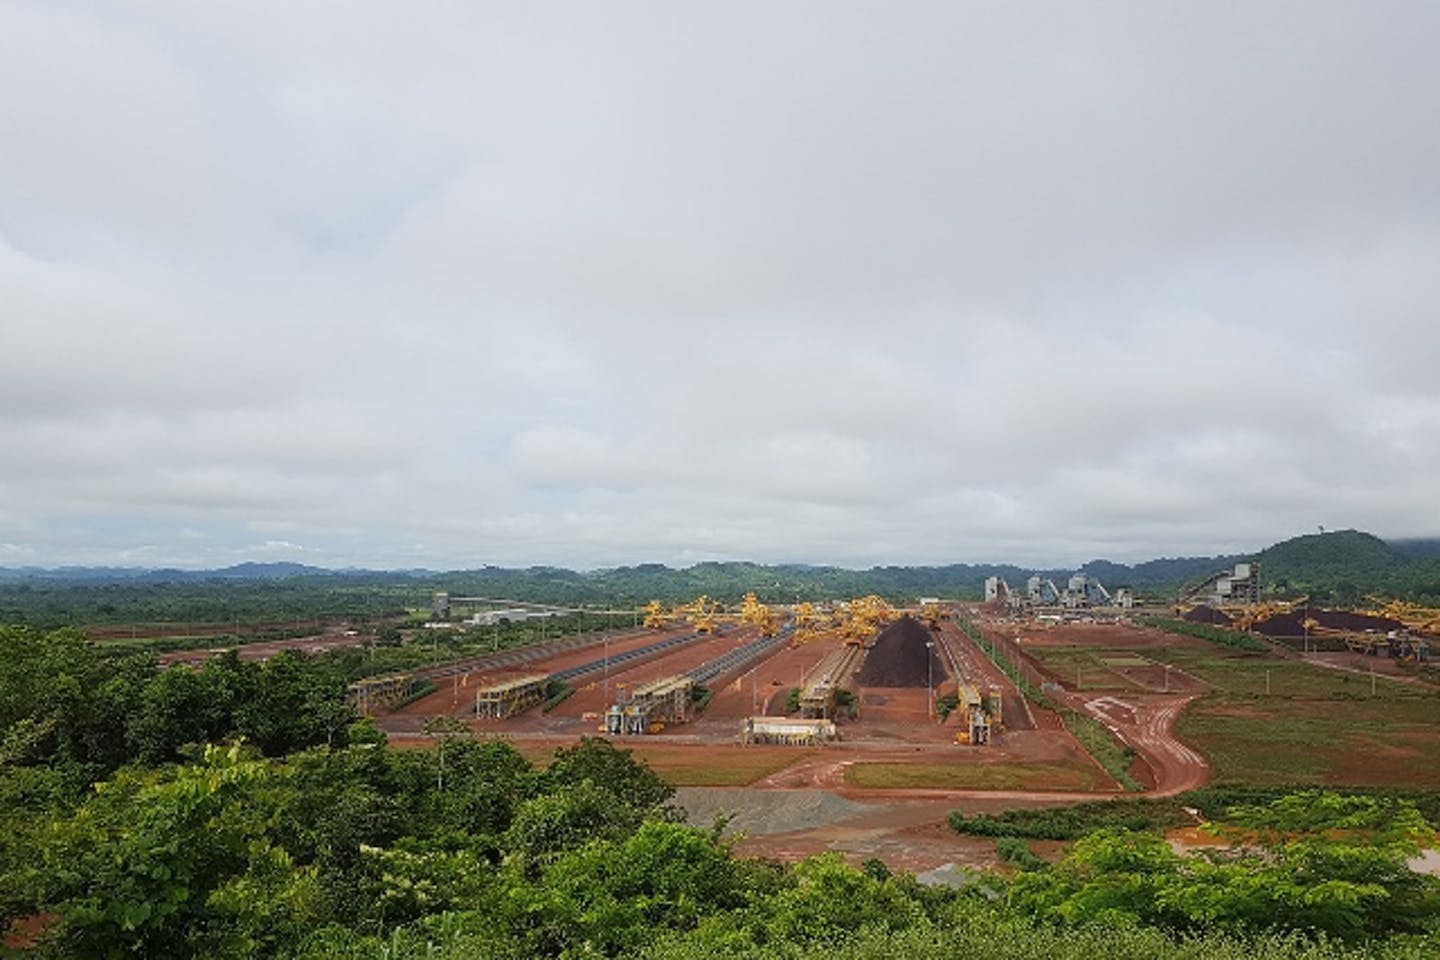 A view of S11D mine surrounded by Carajás National Forest